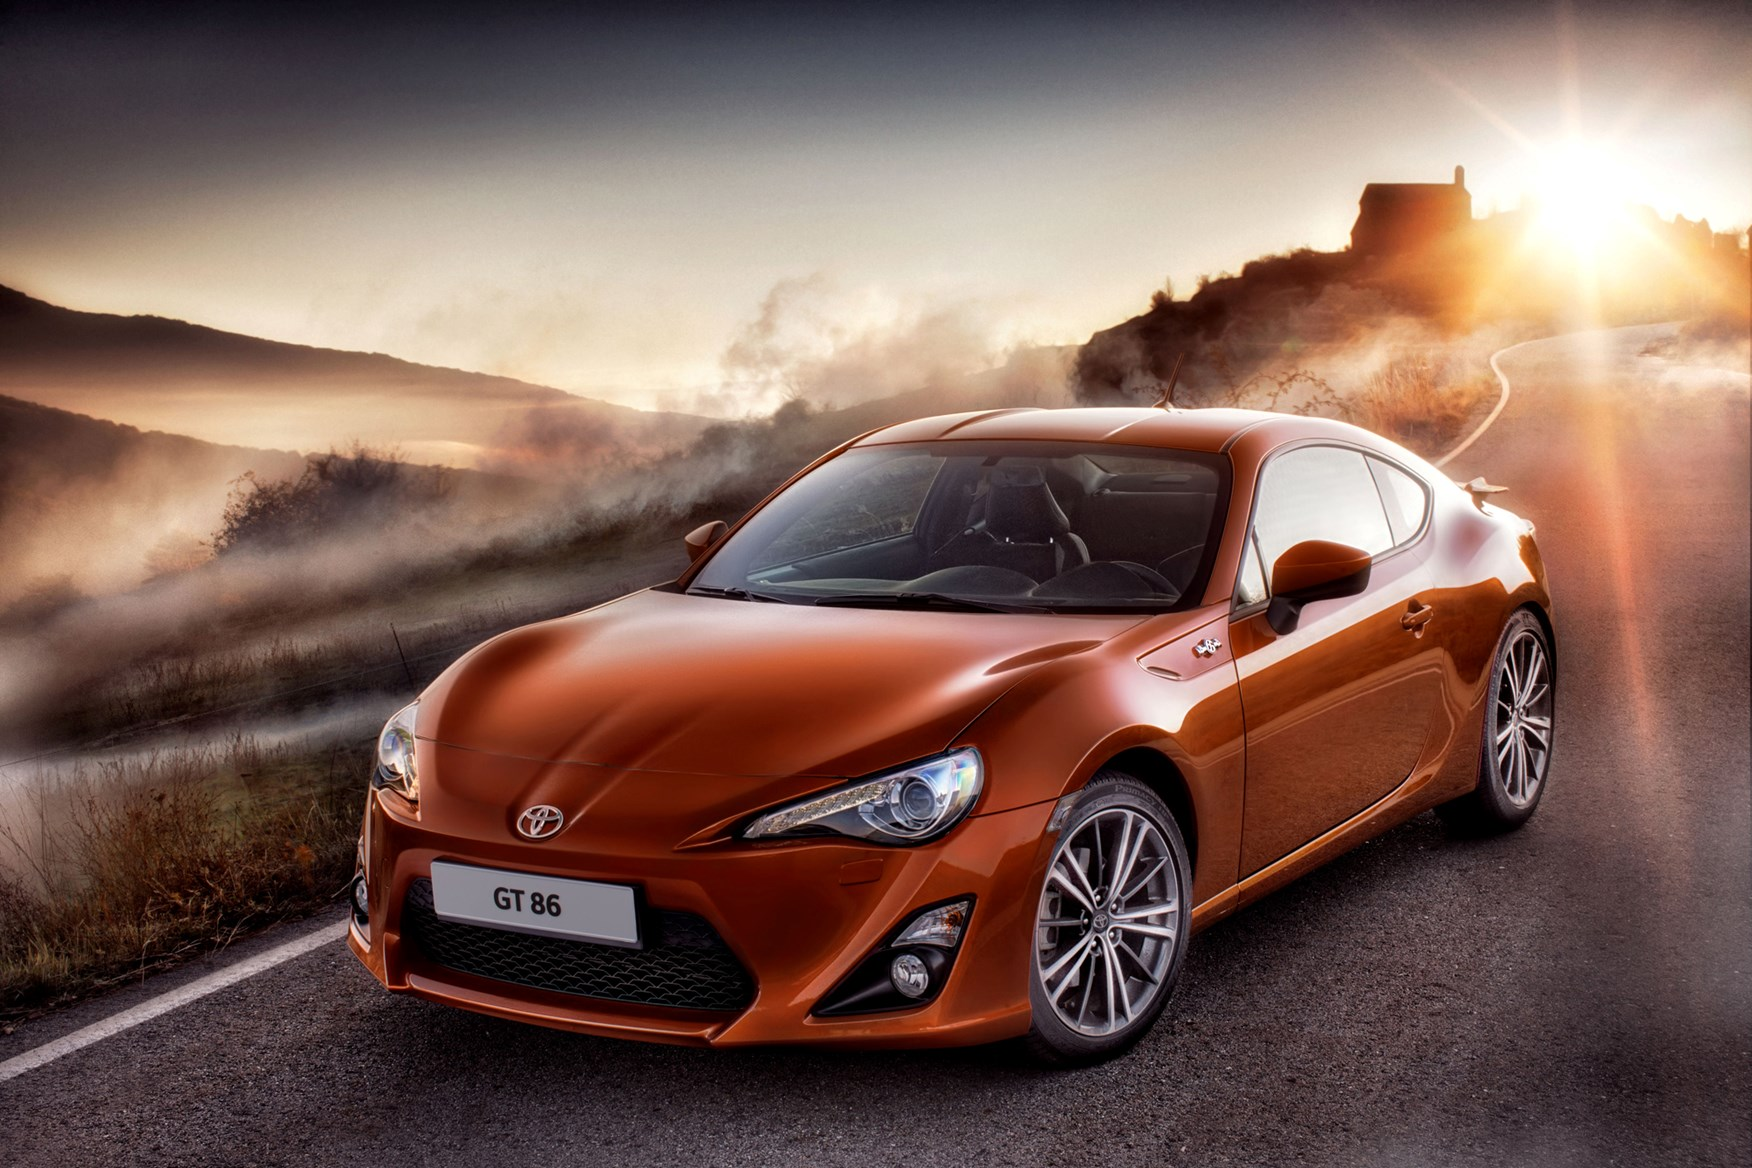 Toyota Gt86 Coupe Review Parkers Gt 86 Wiring Diagram 2016 Driving